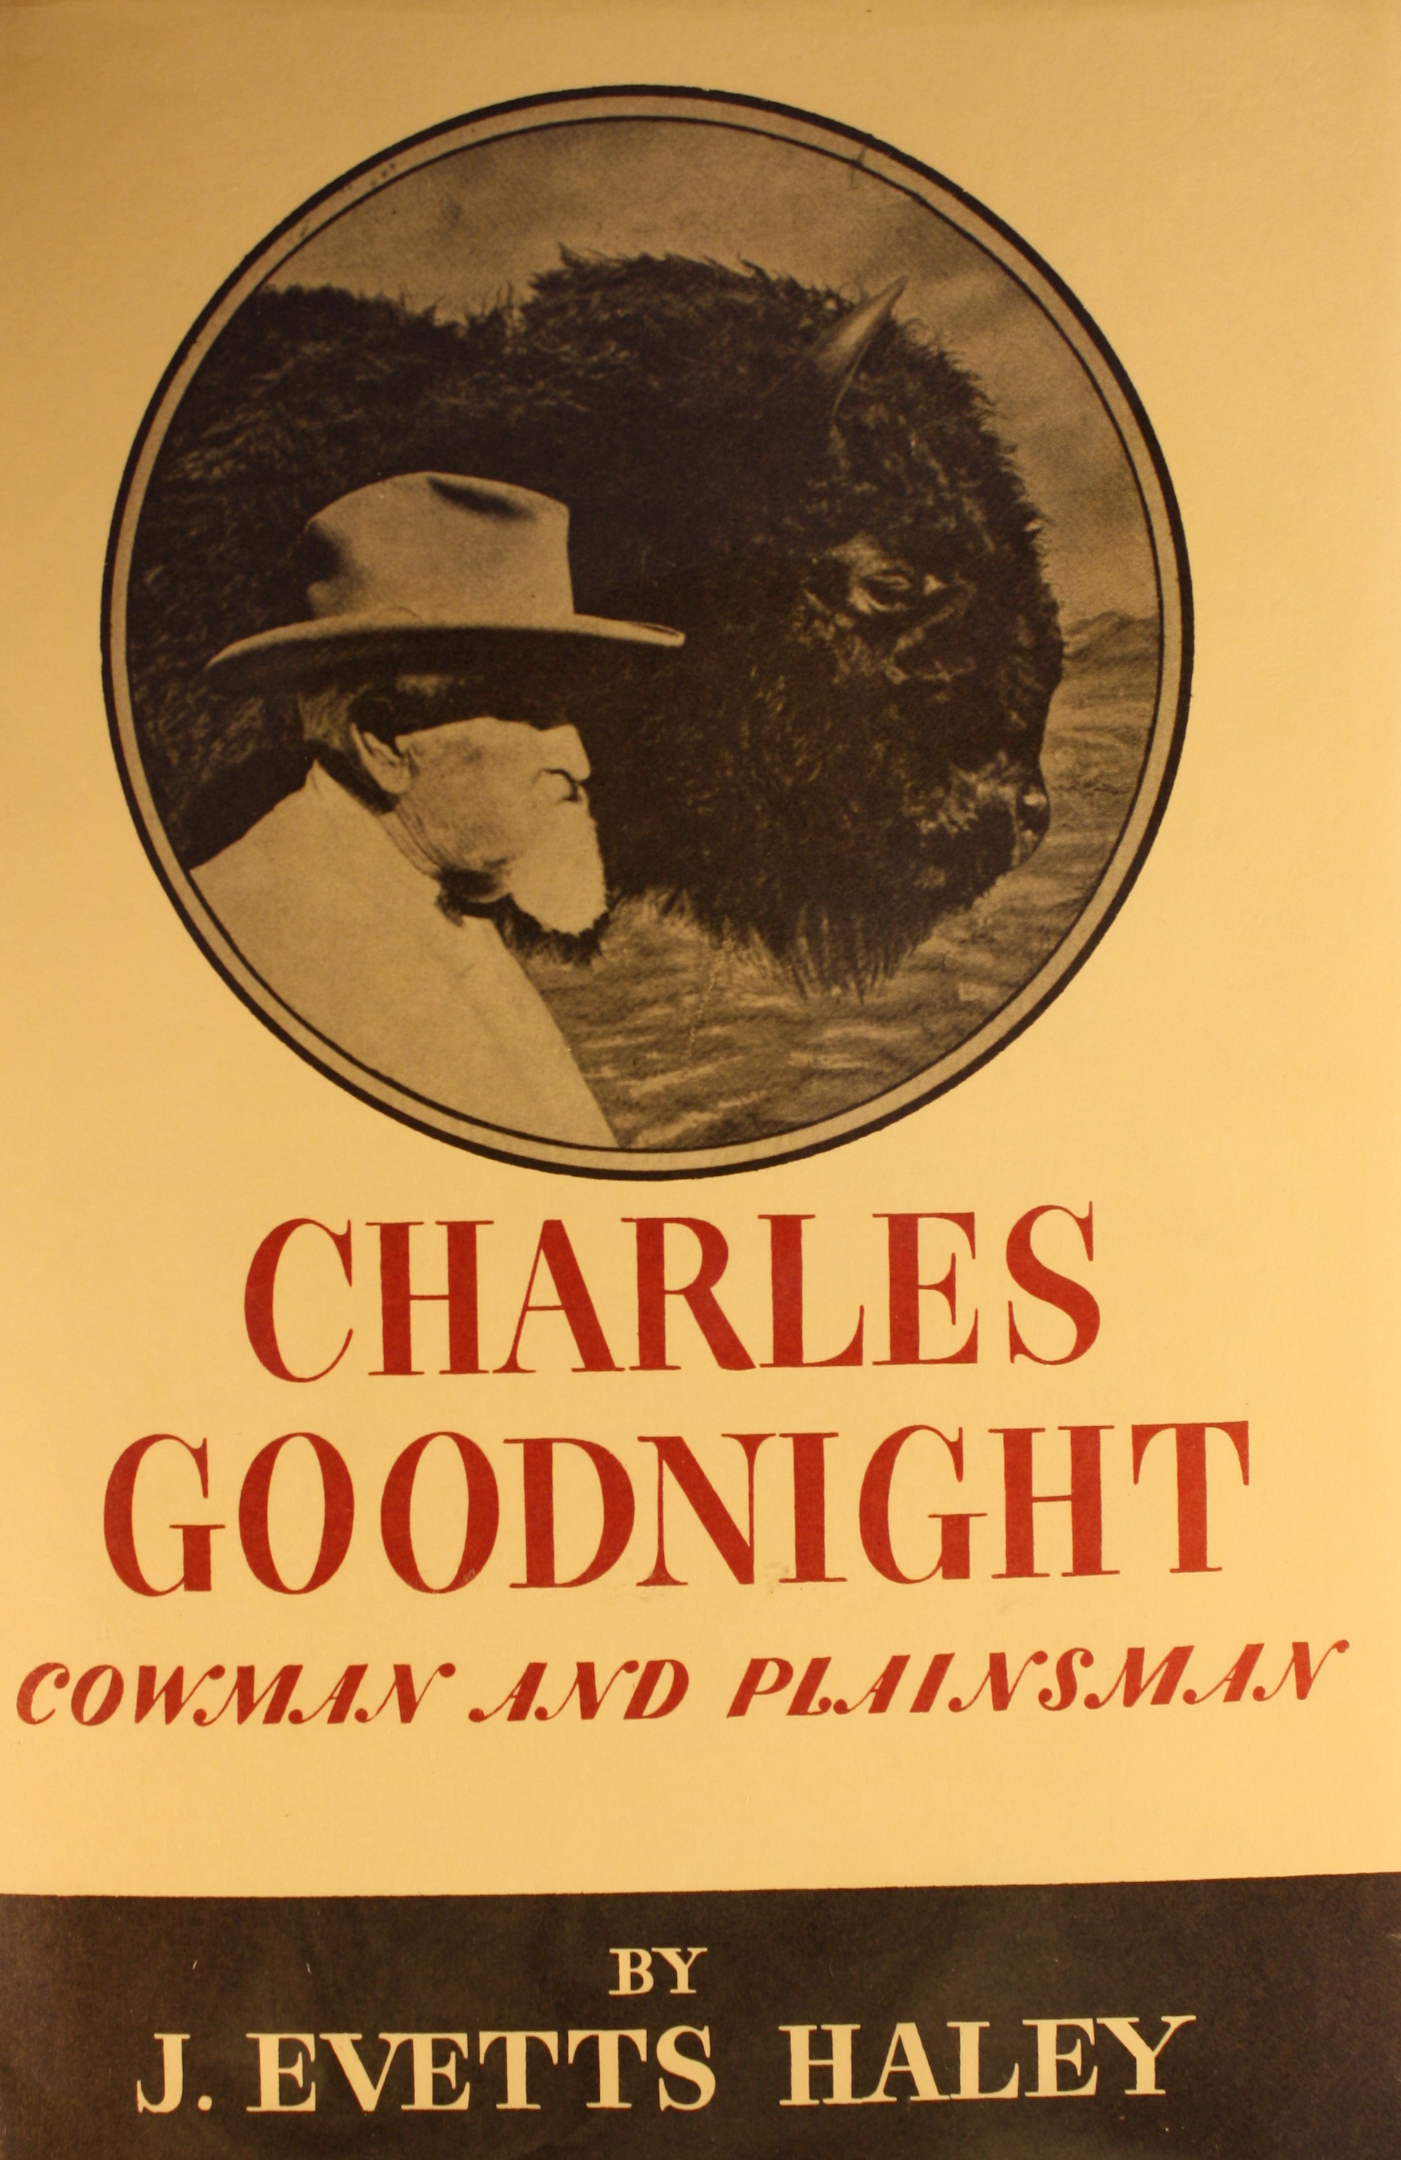 Image for Charles Goodnight Cowman & Plainsman